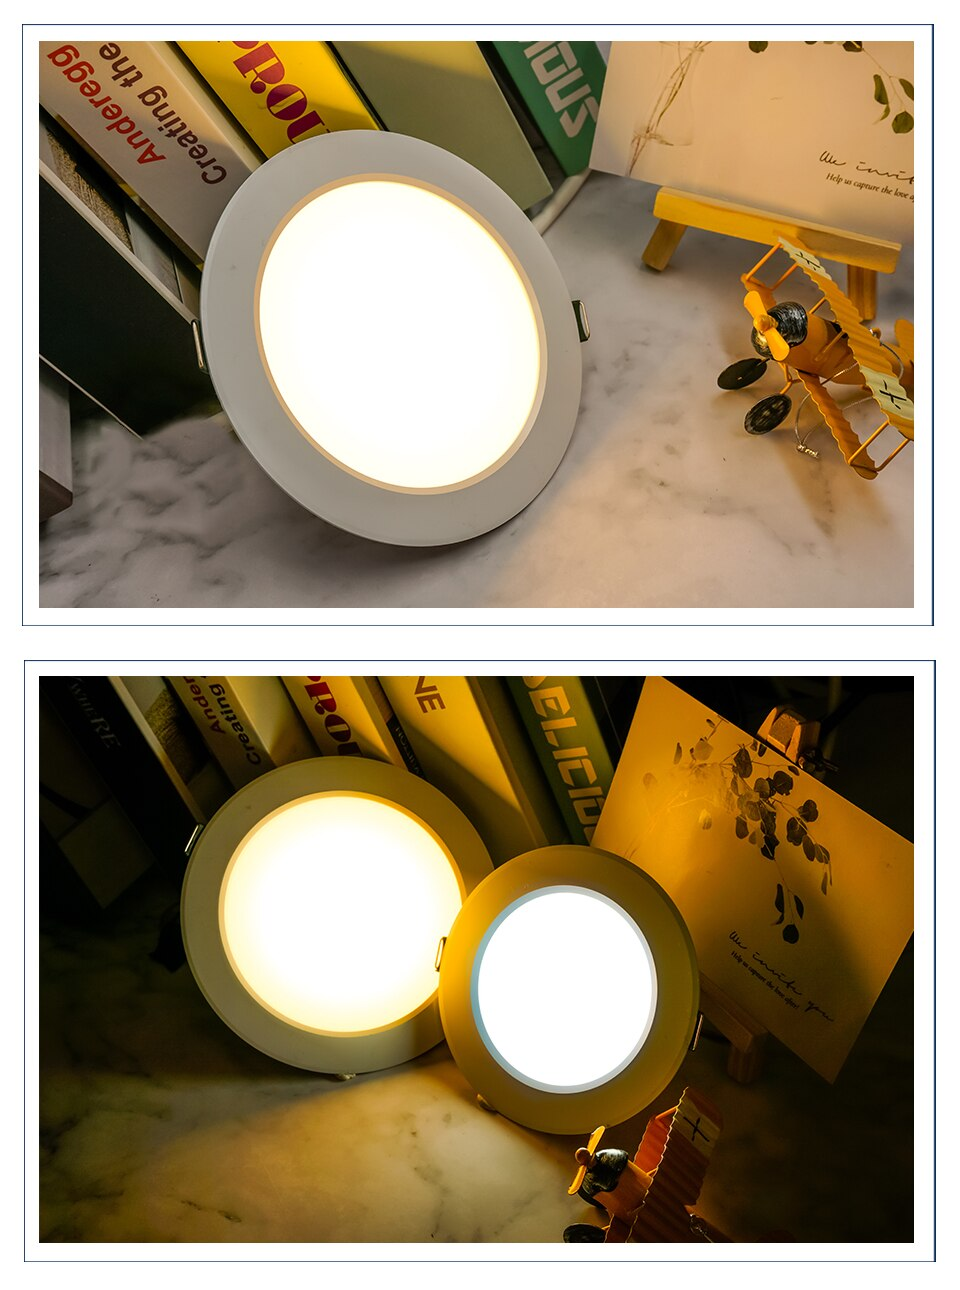 Hc8f33bc3c76b4e1b8193cfe962985cd1g - 10pcs/lot LED Downlight 3W 5W 7W 9W 12W 15W AC 220V Warm Cold White Recessed LED Lamp Spot Light Led Bulb For Bedroom Kitchen